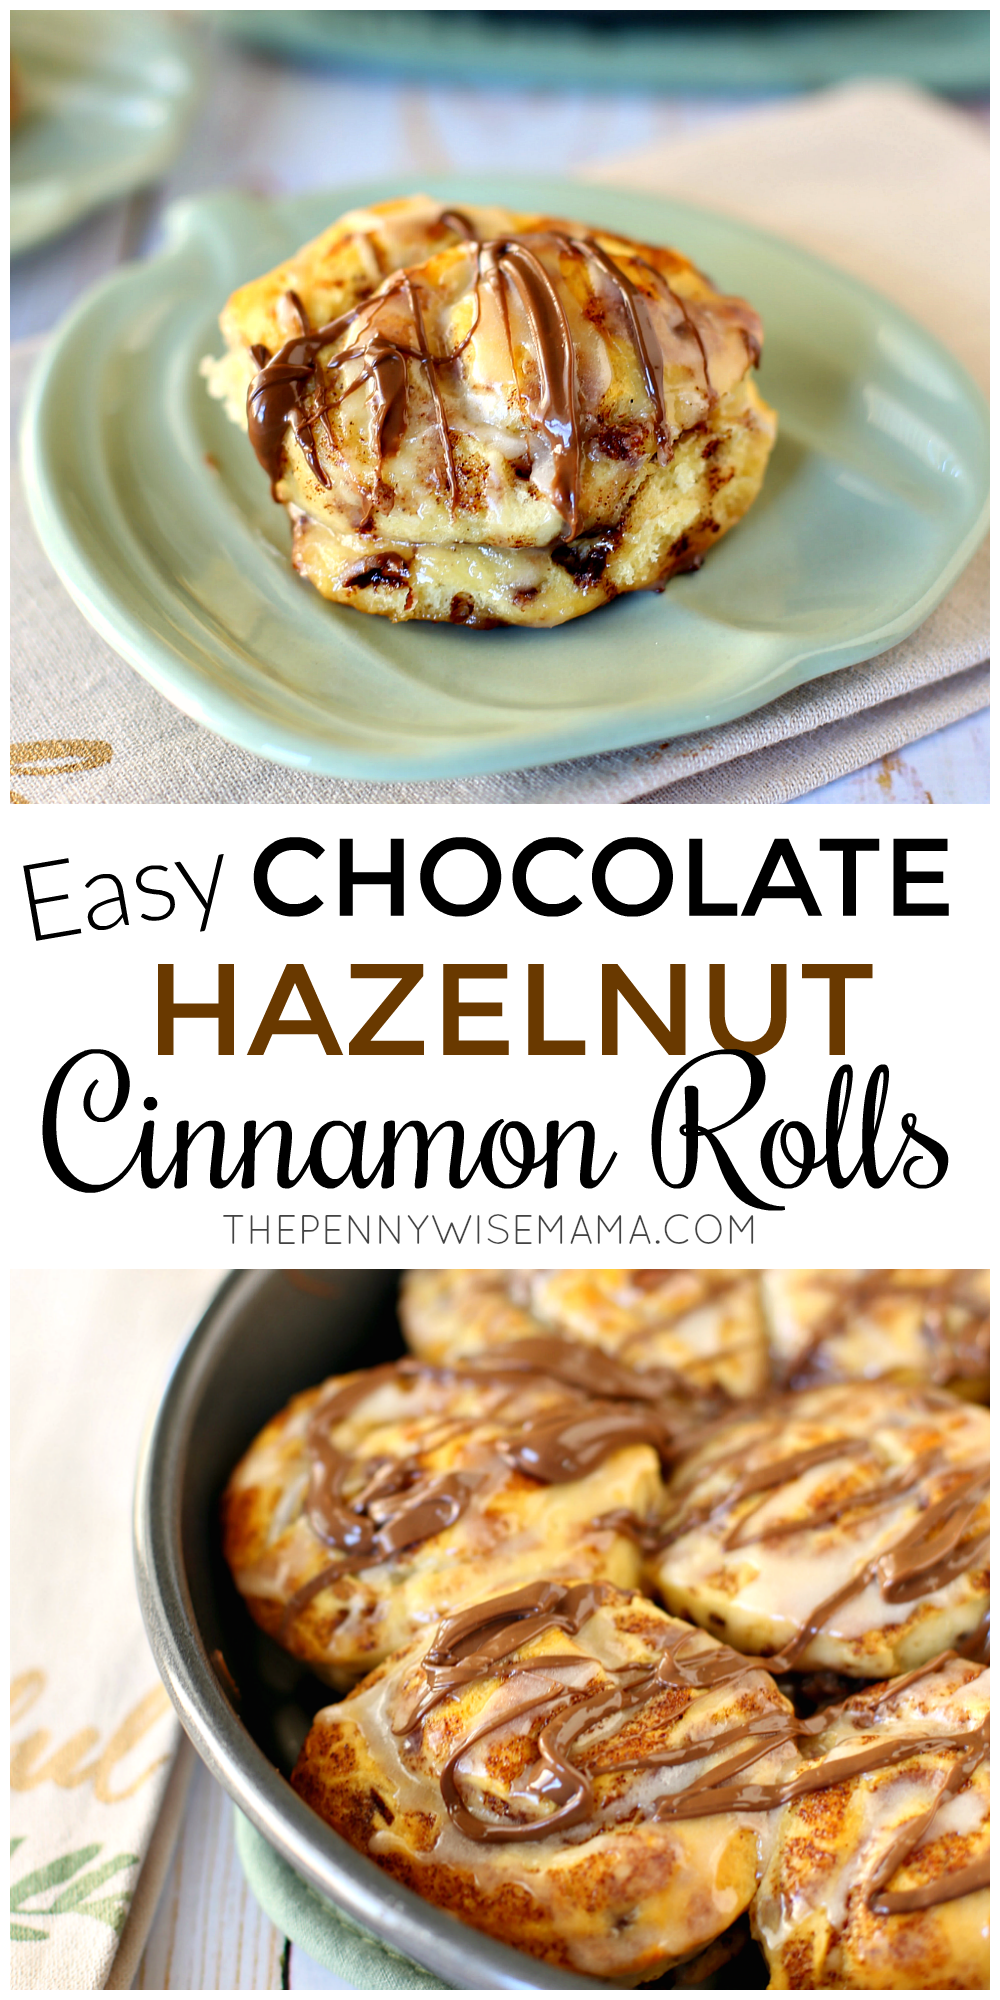 Easy Hazelnut Cinnamon Rolls - simple and delicious recipe that takes less than 20 mins!